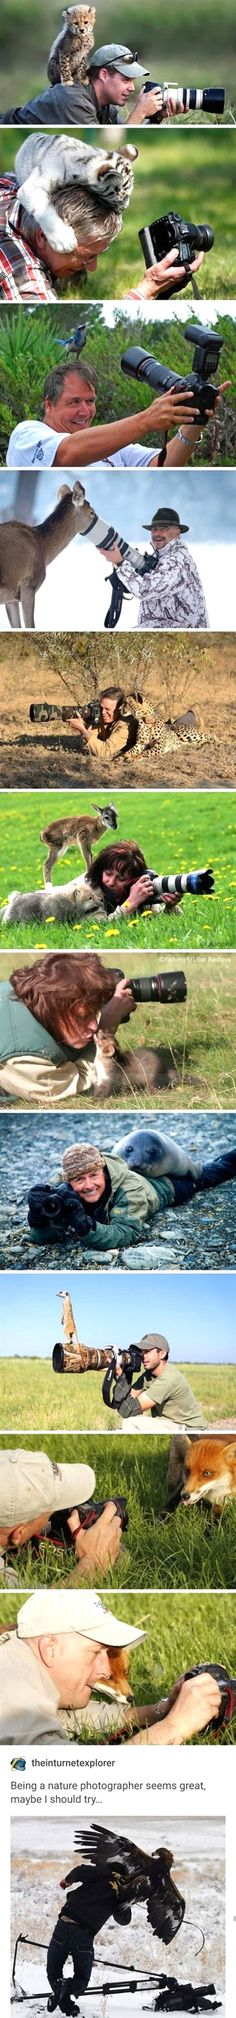 Online Photography Jobs - This is why I don't open iFunny in public Photography Jobs Online Funny Animal Jokes, Cute Funny Animals, Funny Animal Pictures, Animal Memes, Funny Cute, Hilarious, Funny Photos, Photography Jobs, Photography Lighting